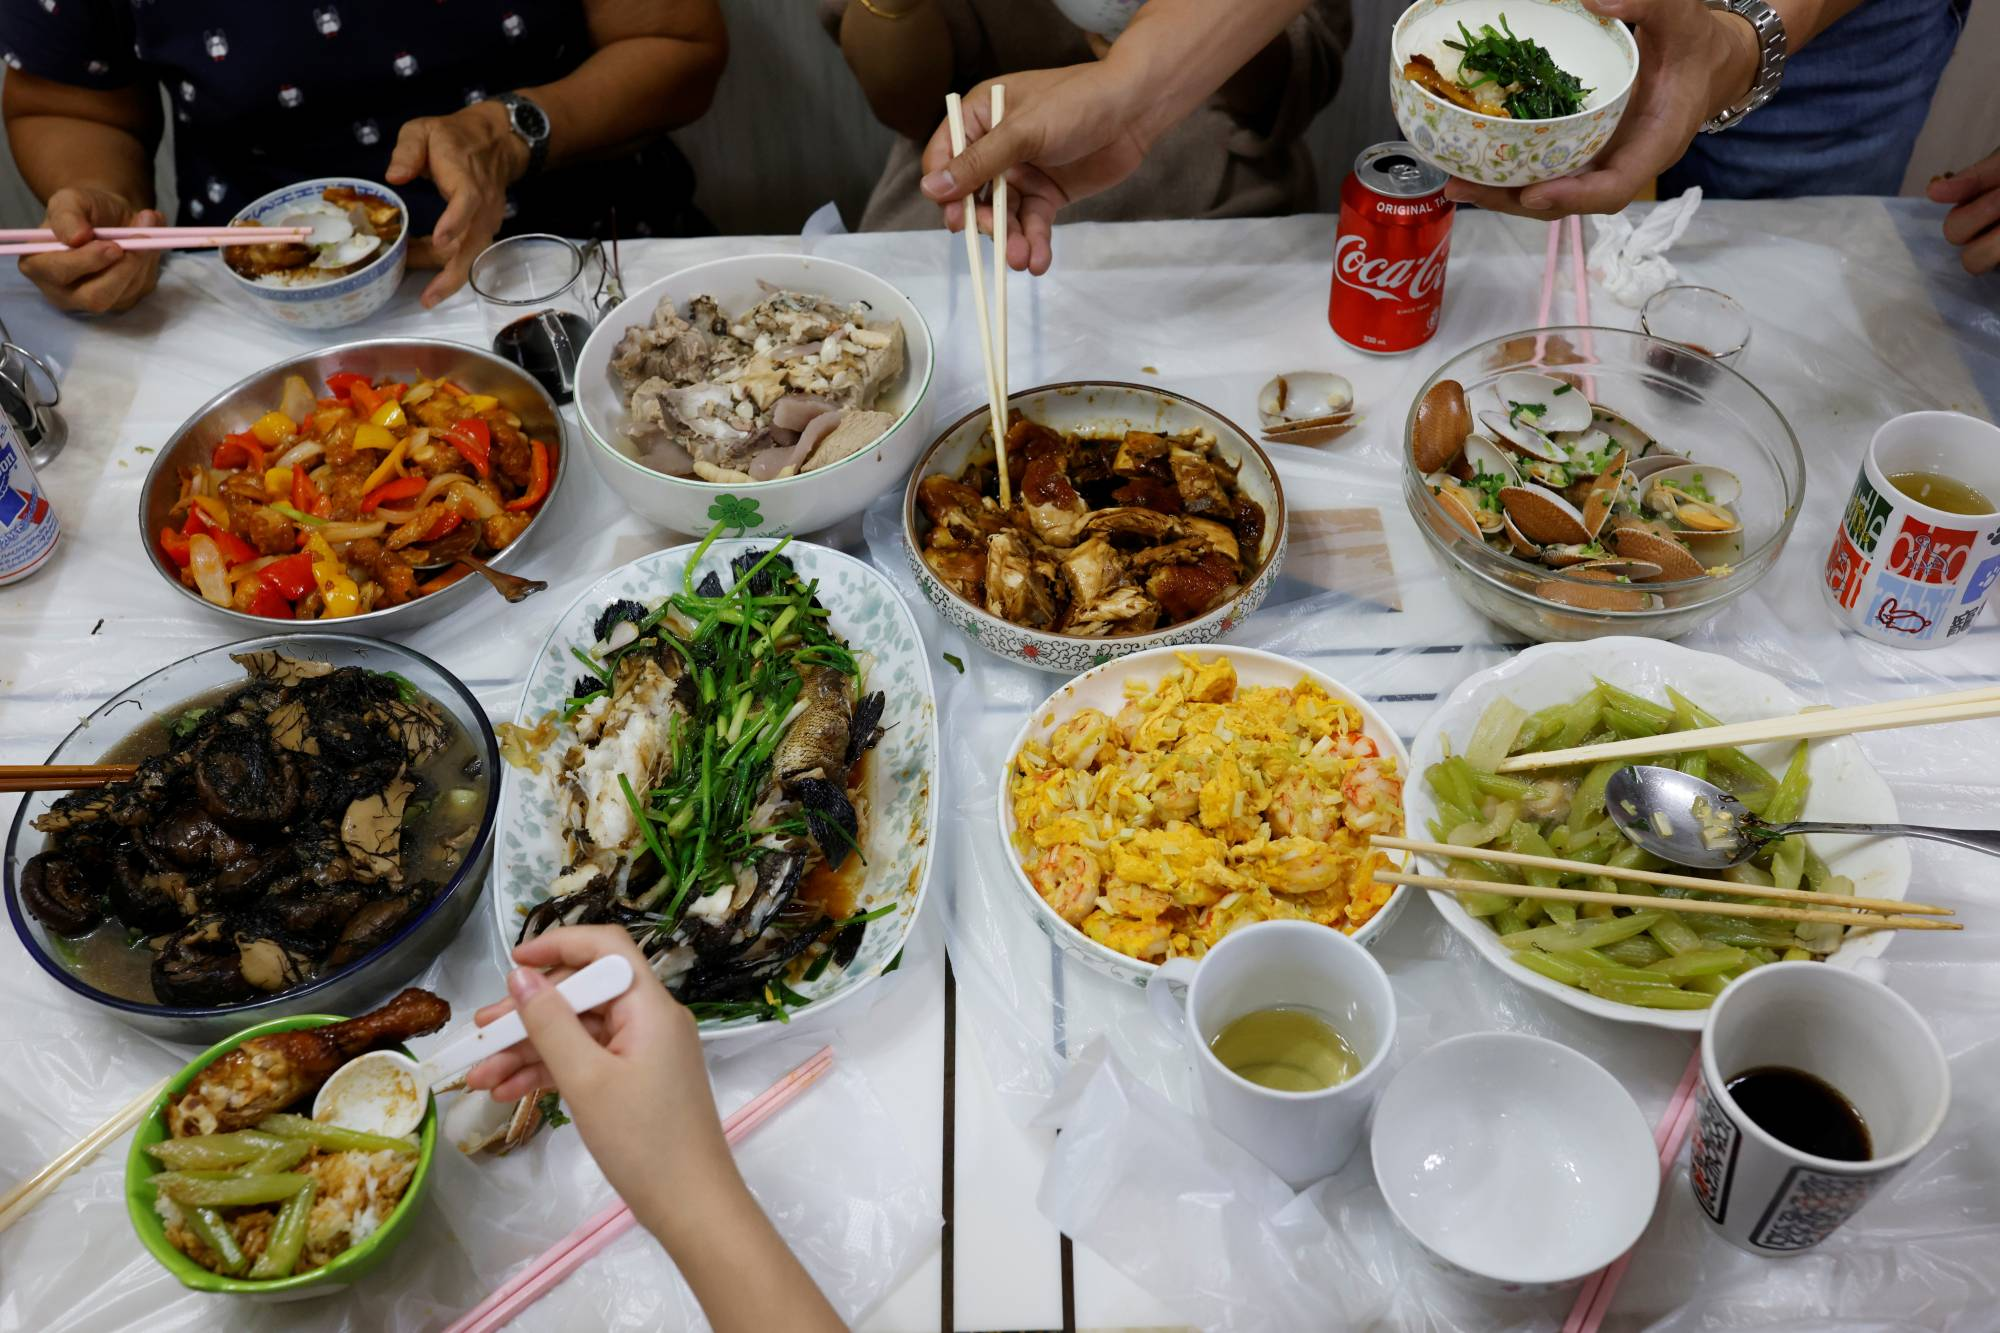 The Lai family has dinner at Asa Lai's parent's home in Hong Kong. | REUTERS